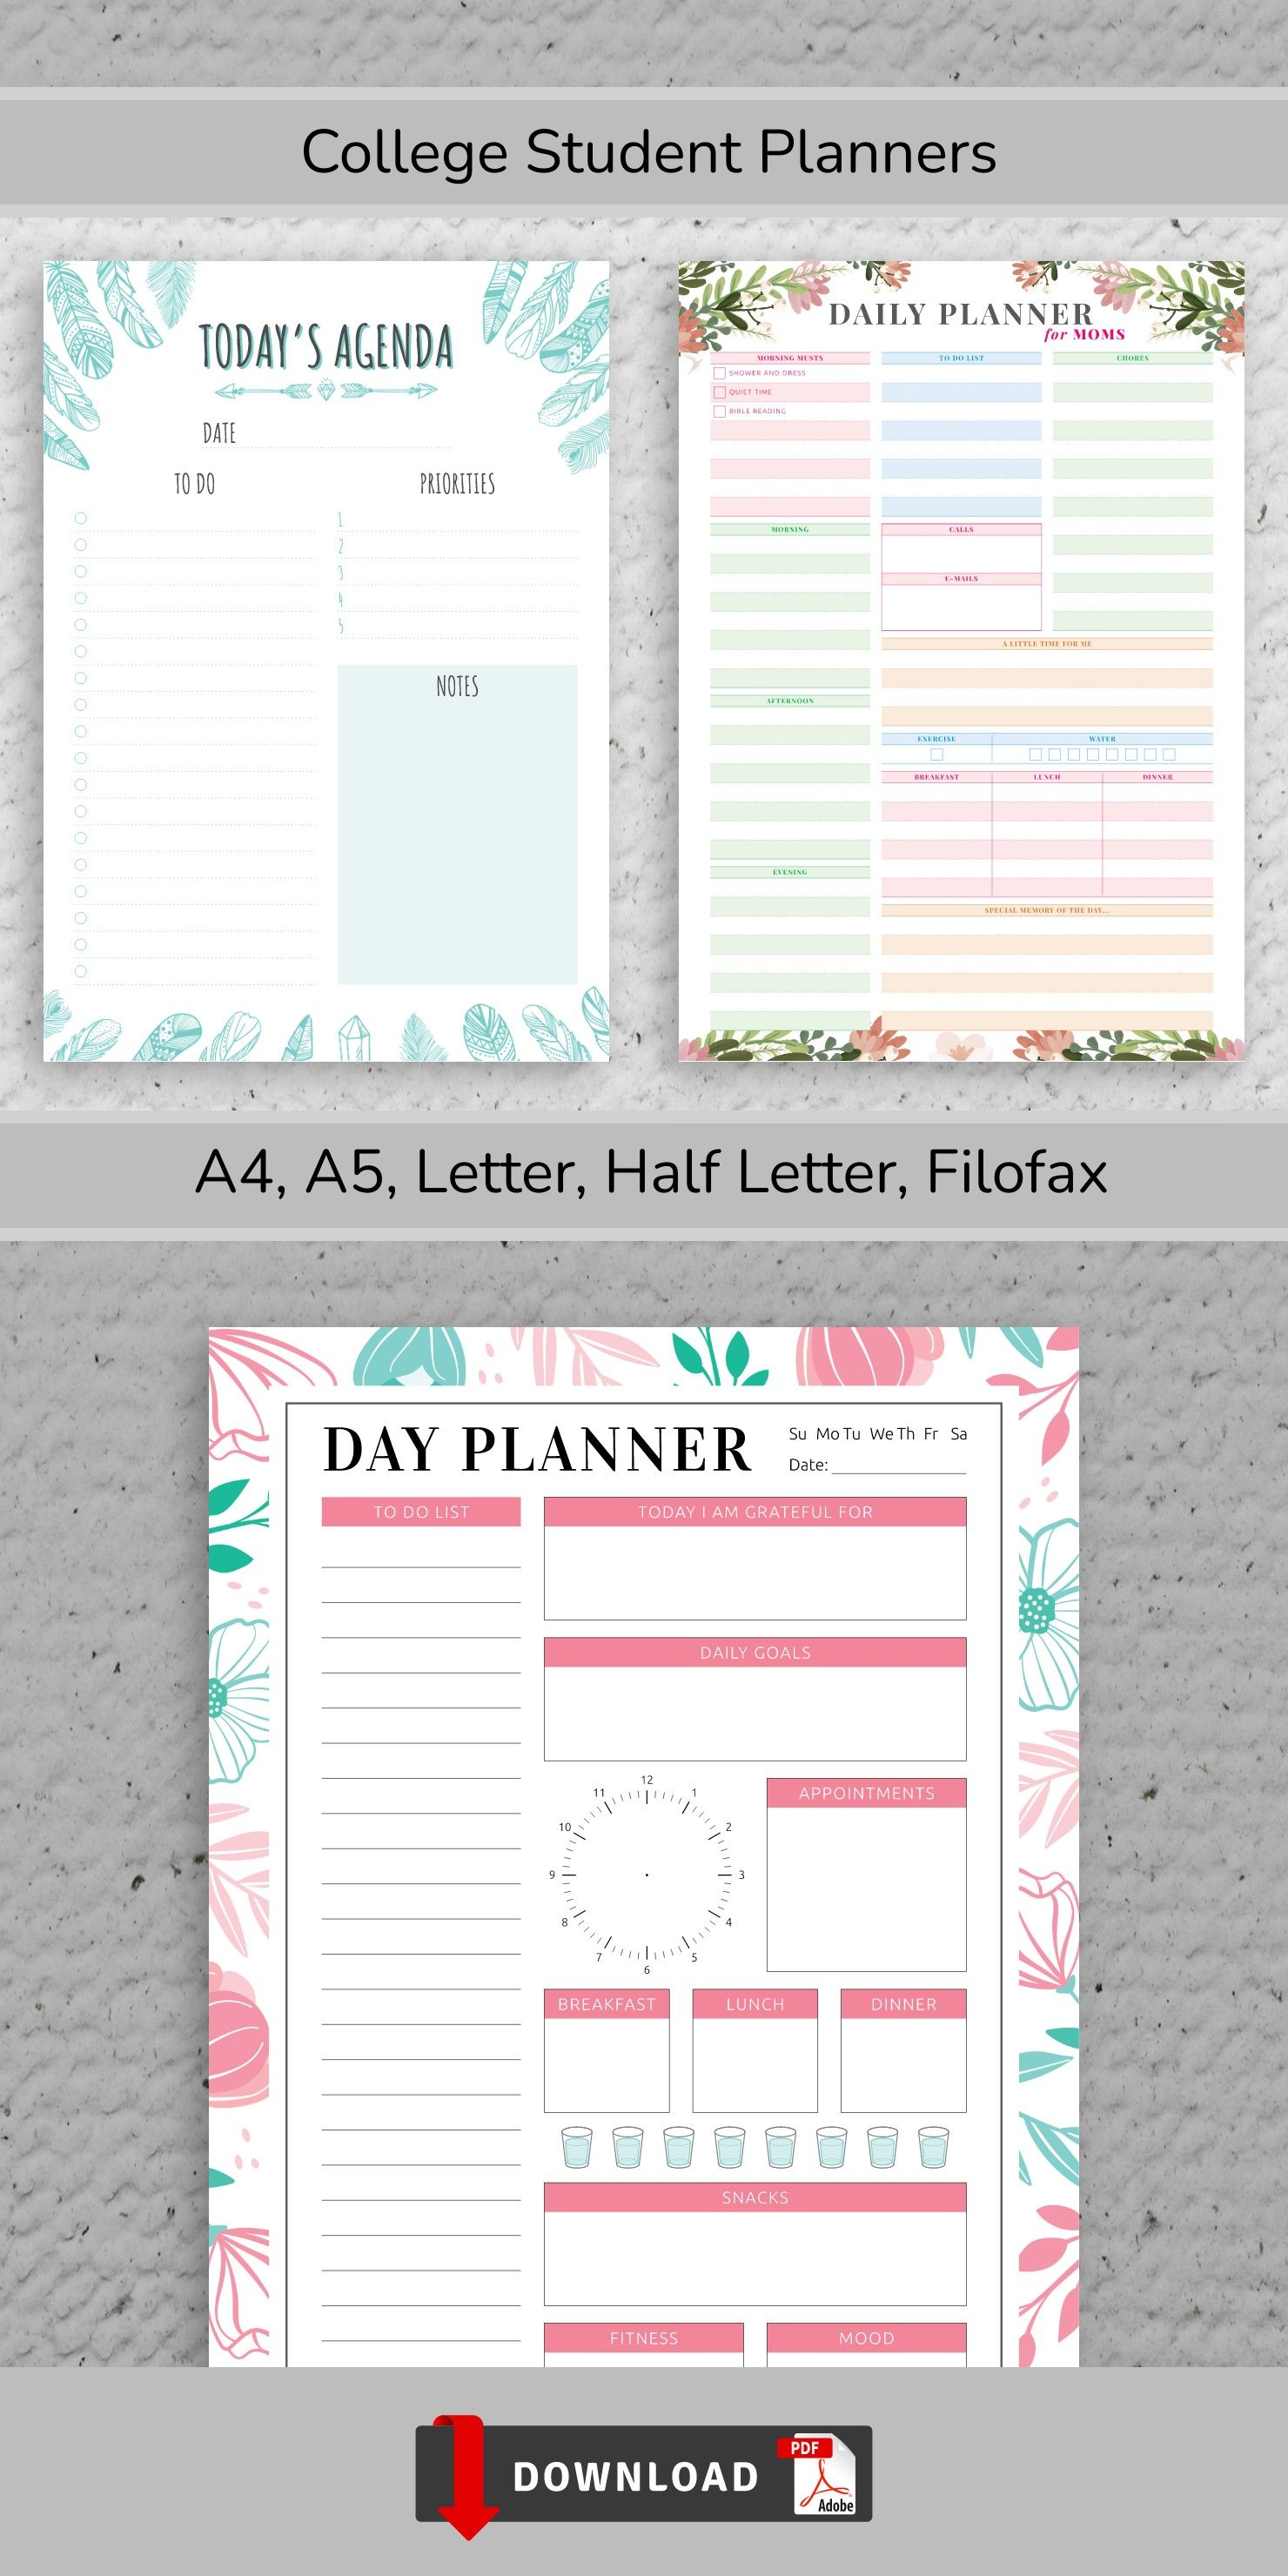 Daily Planner Printable Daily Hourly Schedule Template Etsy Student Planner Printable Schedule Template Student Planner [ 2960 x 1480 Pixel ]